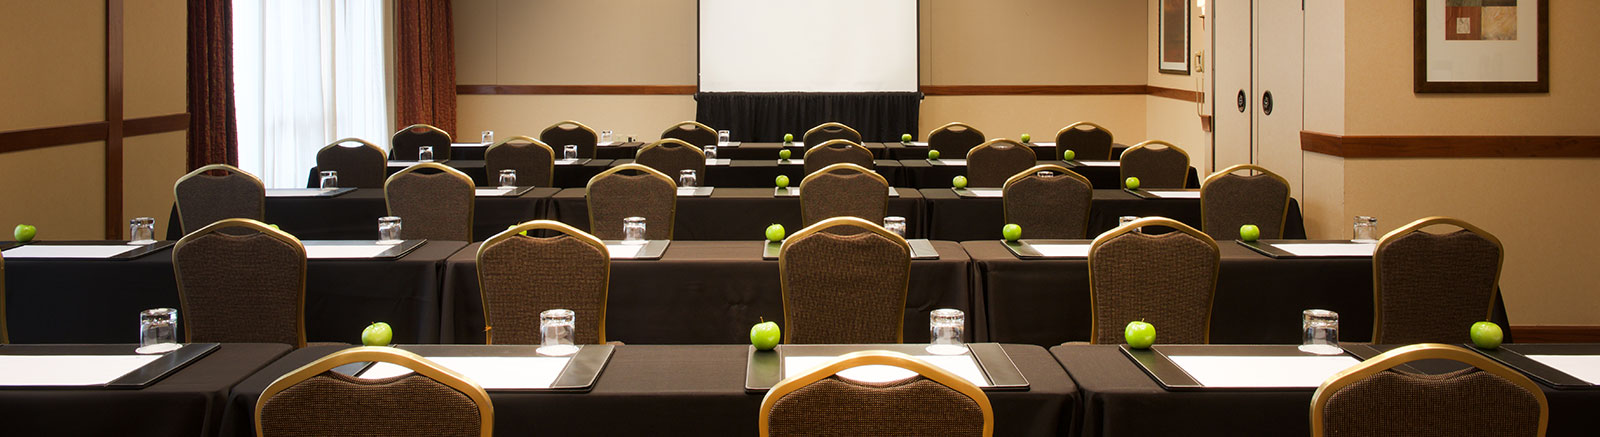 How to Plan a Group Meeting - Horseshoe Bay Resort